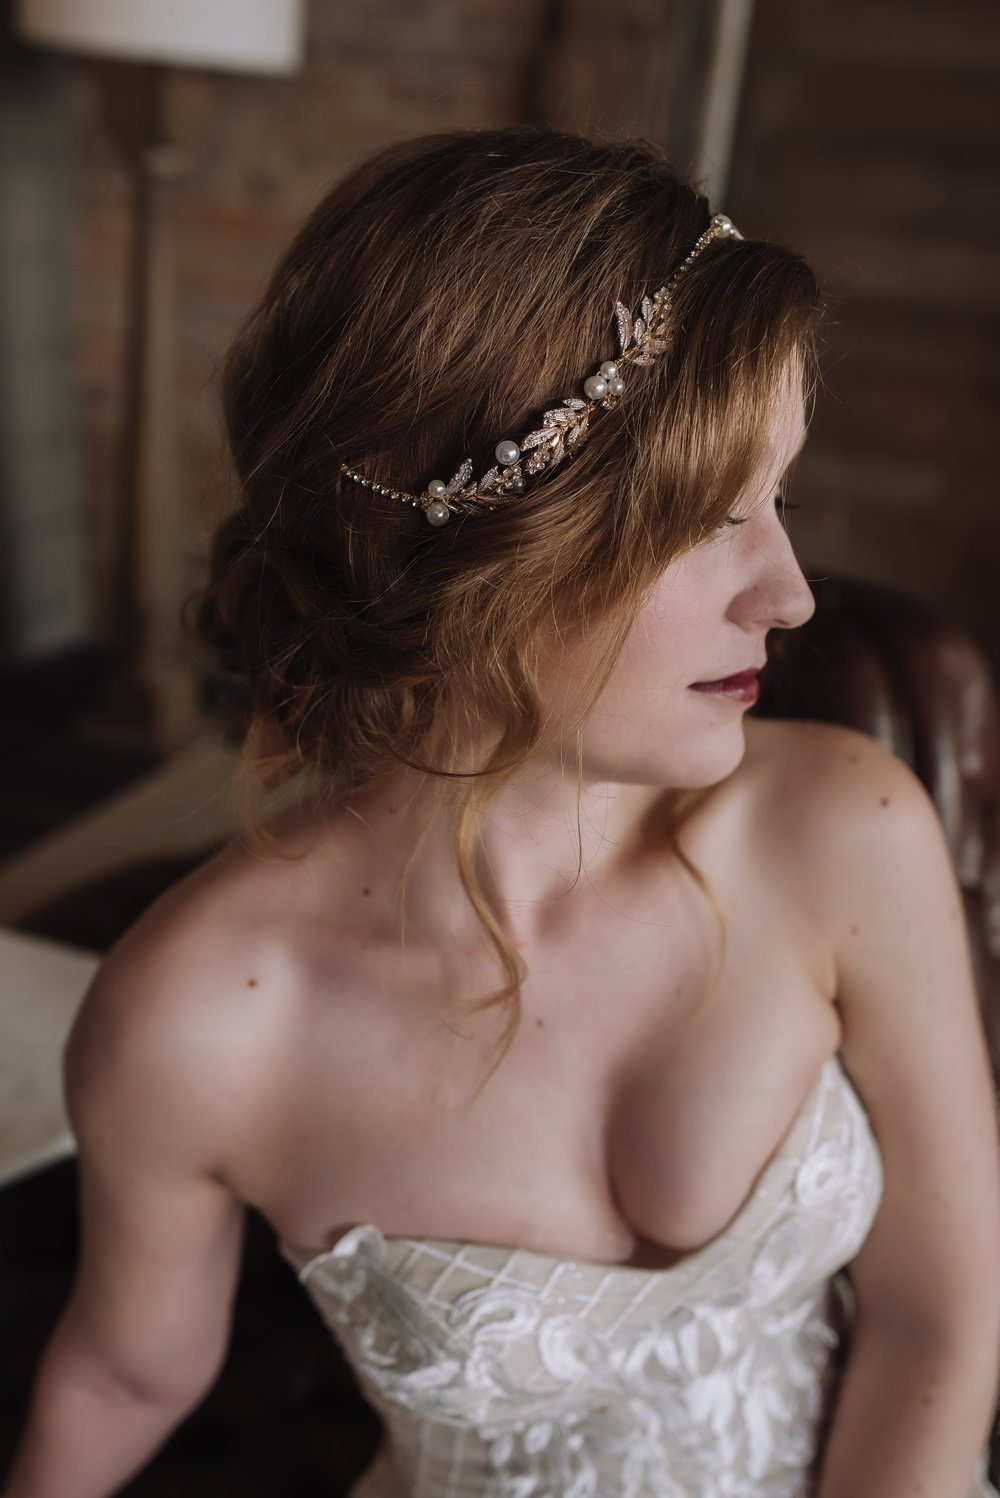 Gatsby wedding, antique headpiece, lace wedding dress